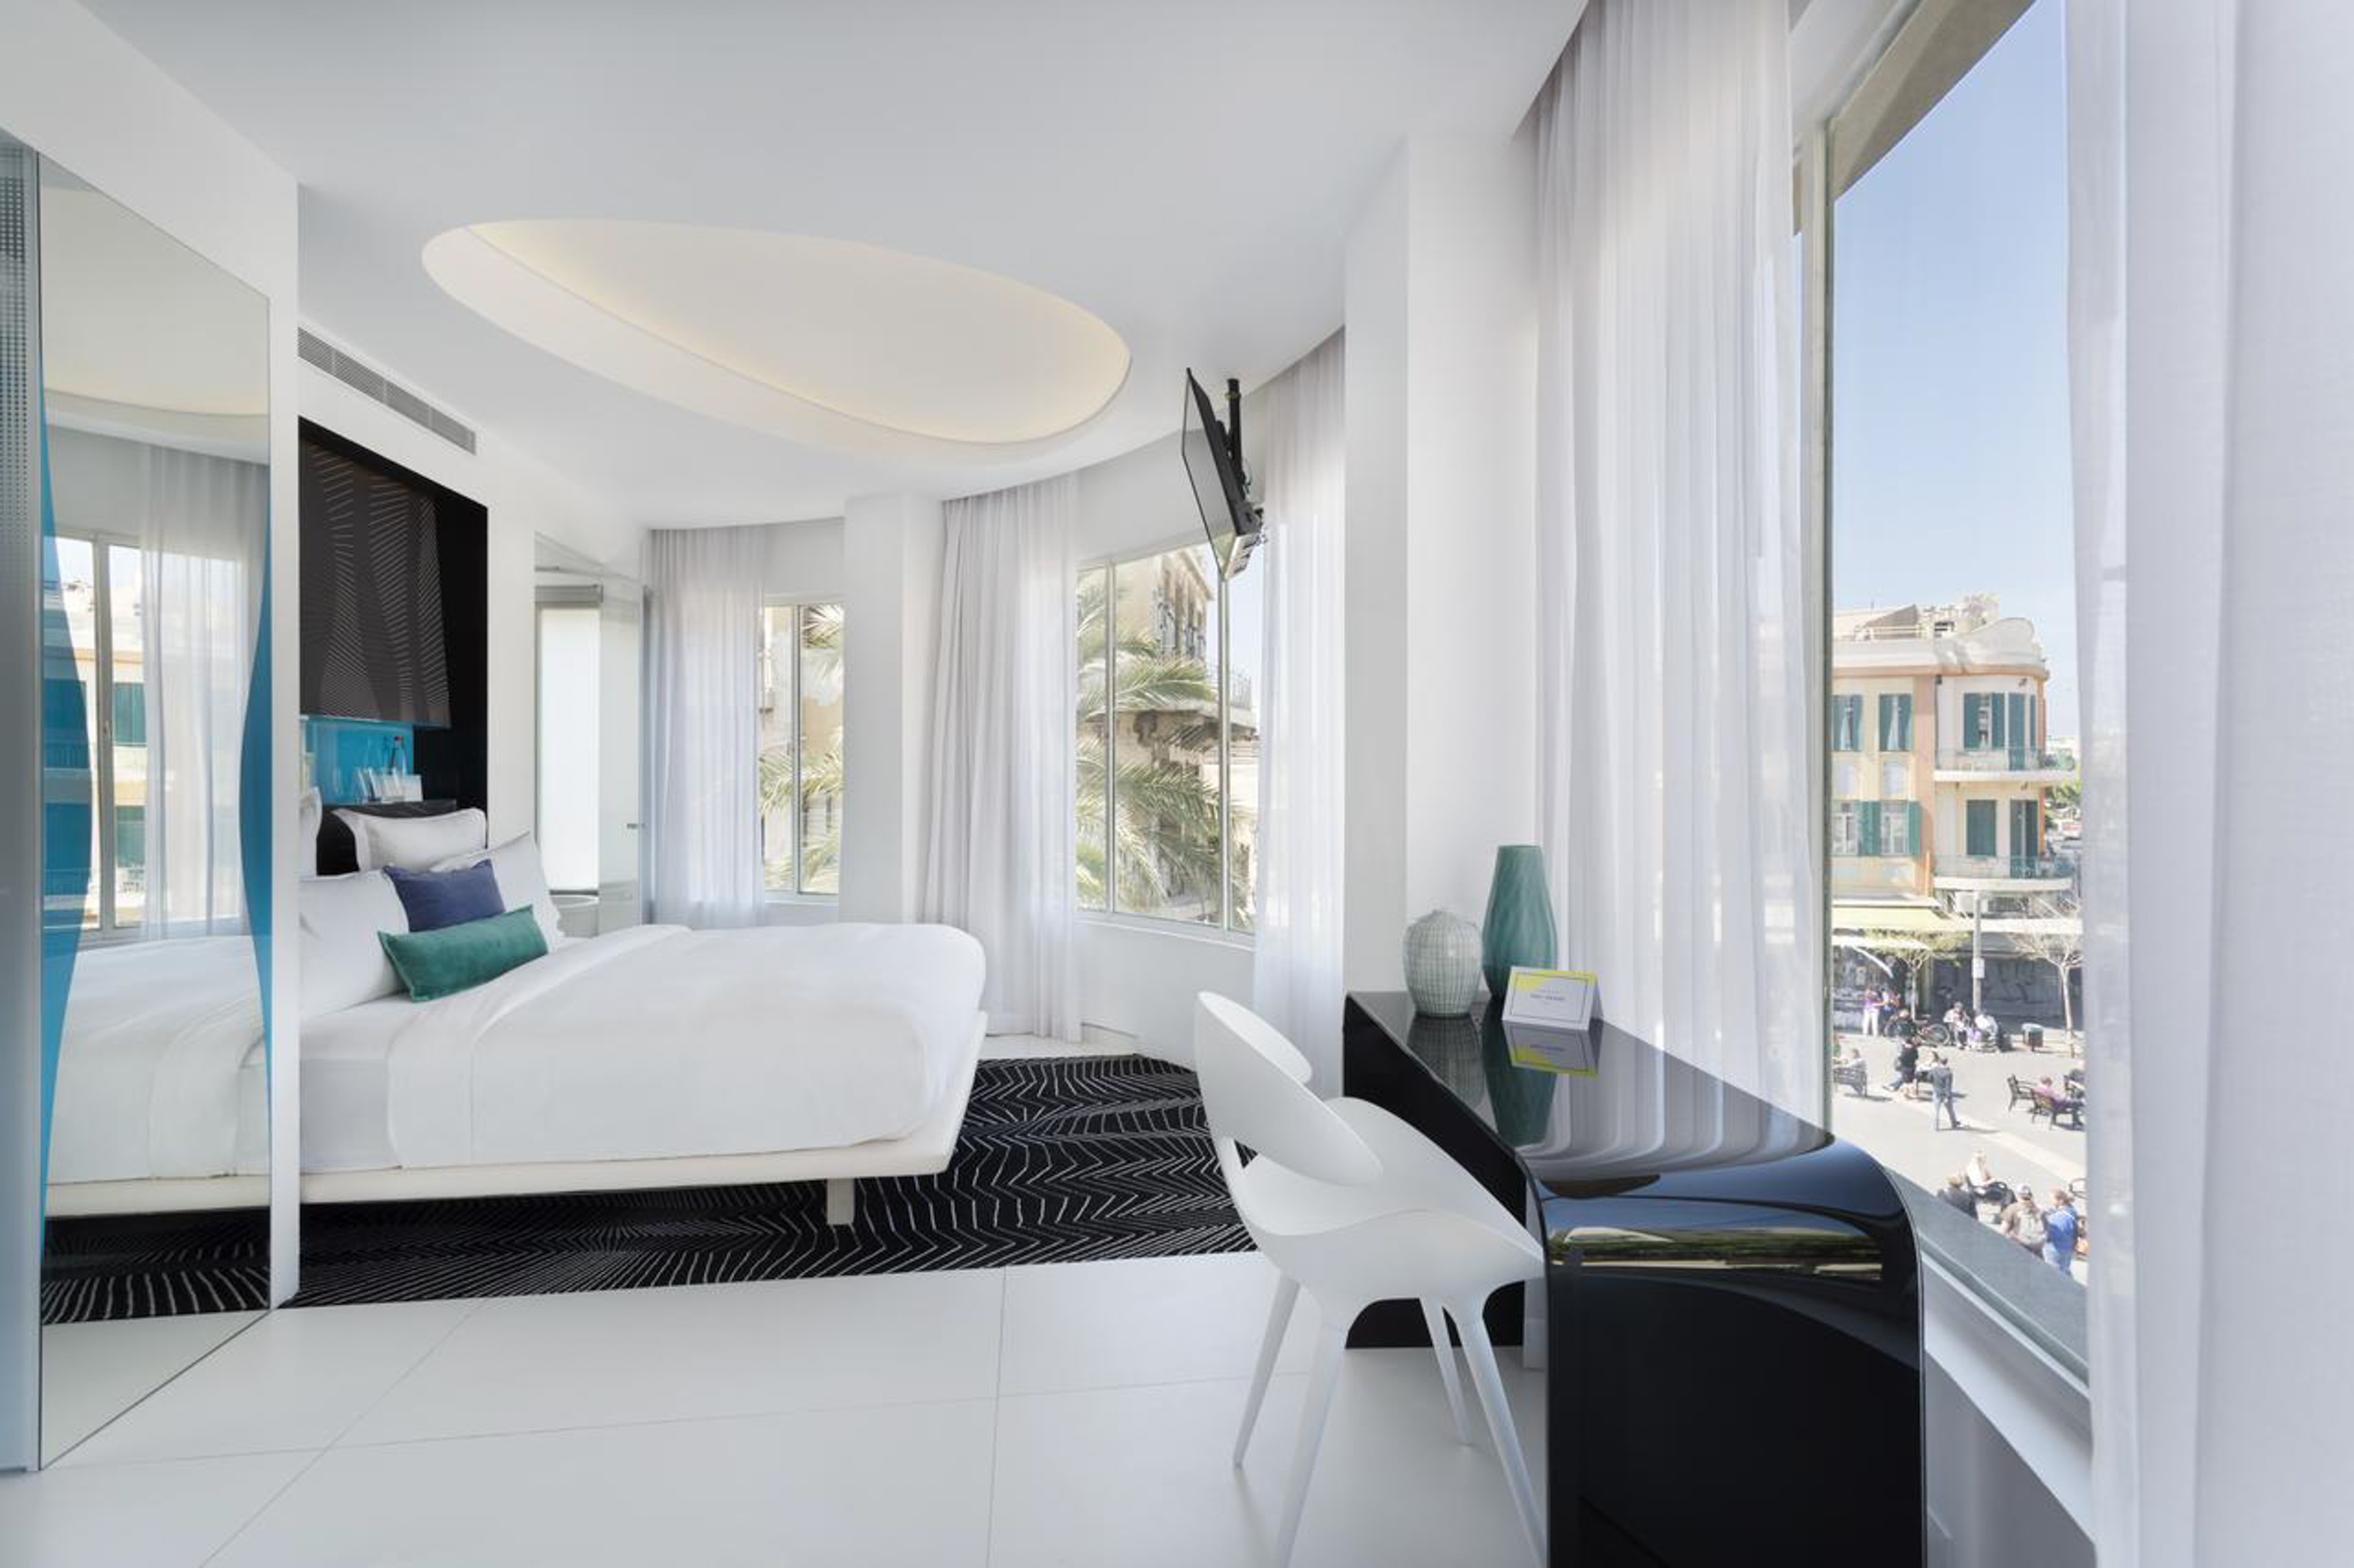 Hotel Tel Aviv Piscine The 10 Best Hotels In Tel Aviv